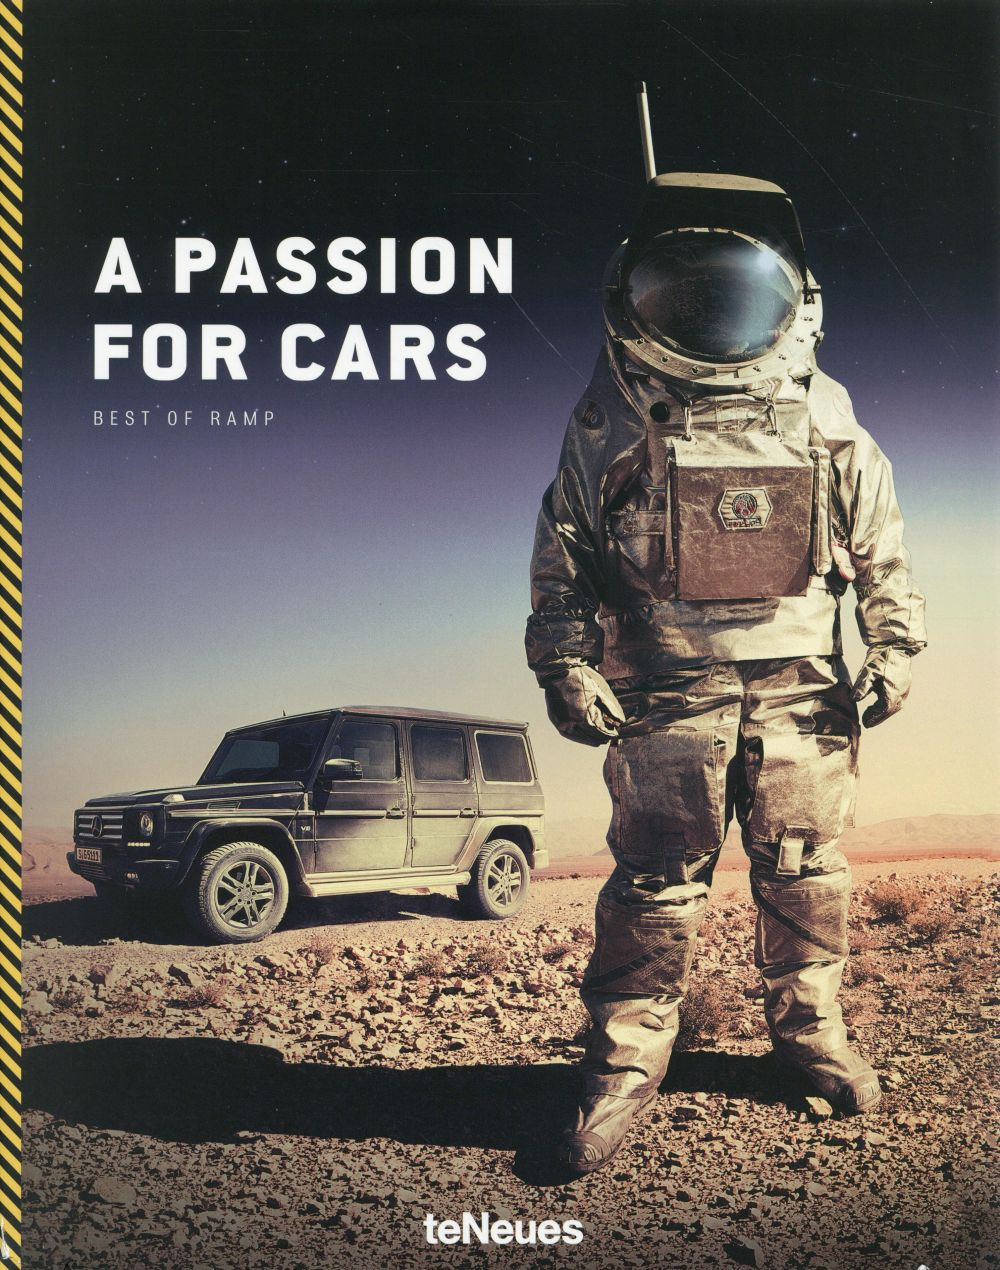 A passion of cars